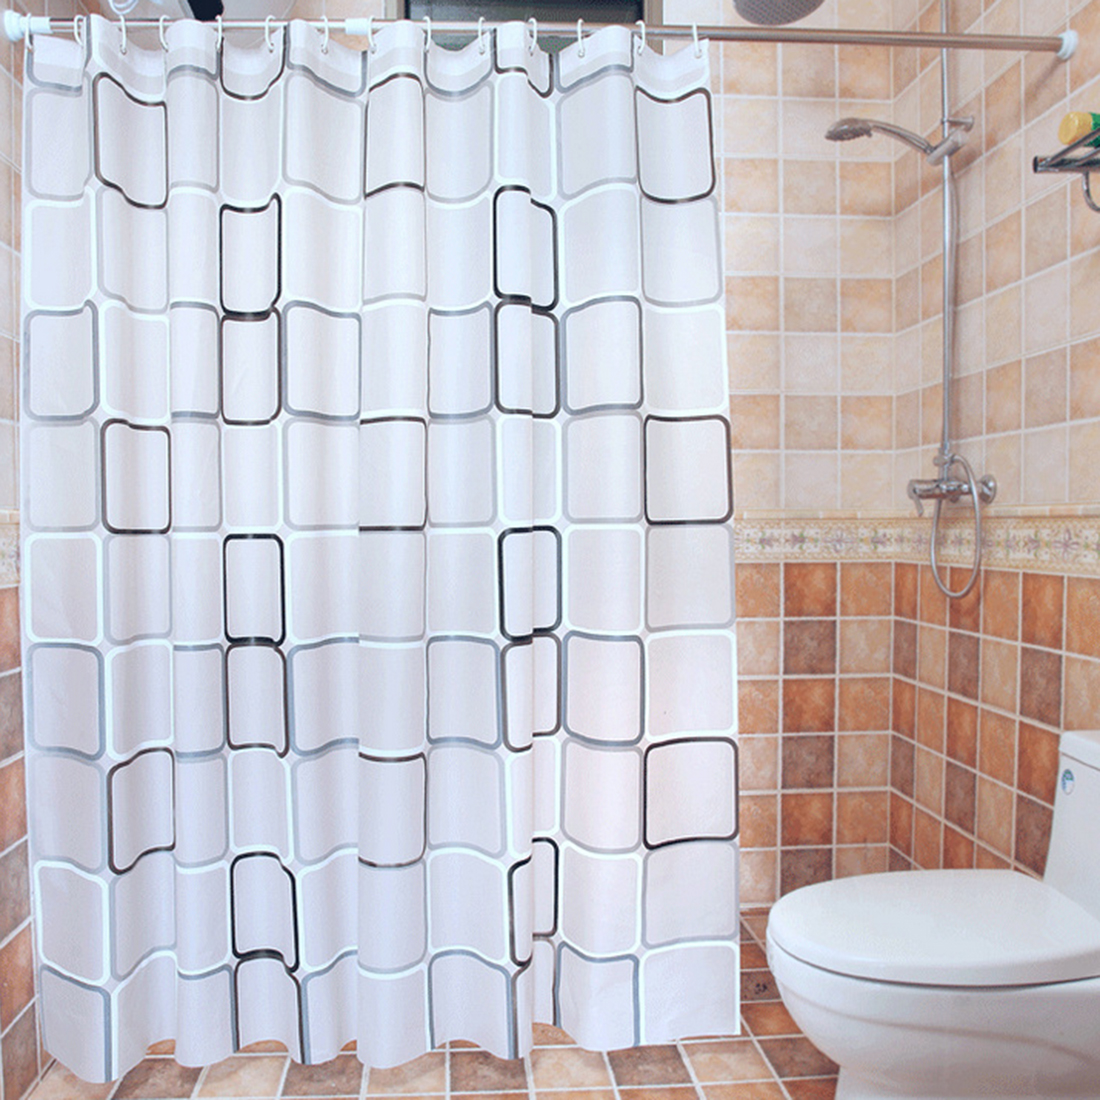 Clear fish shower curtain - Cl Clear Fish Shower Curtain High Quality Peva Thicken Waterproof Bath Curtain Eco Friendly Shower